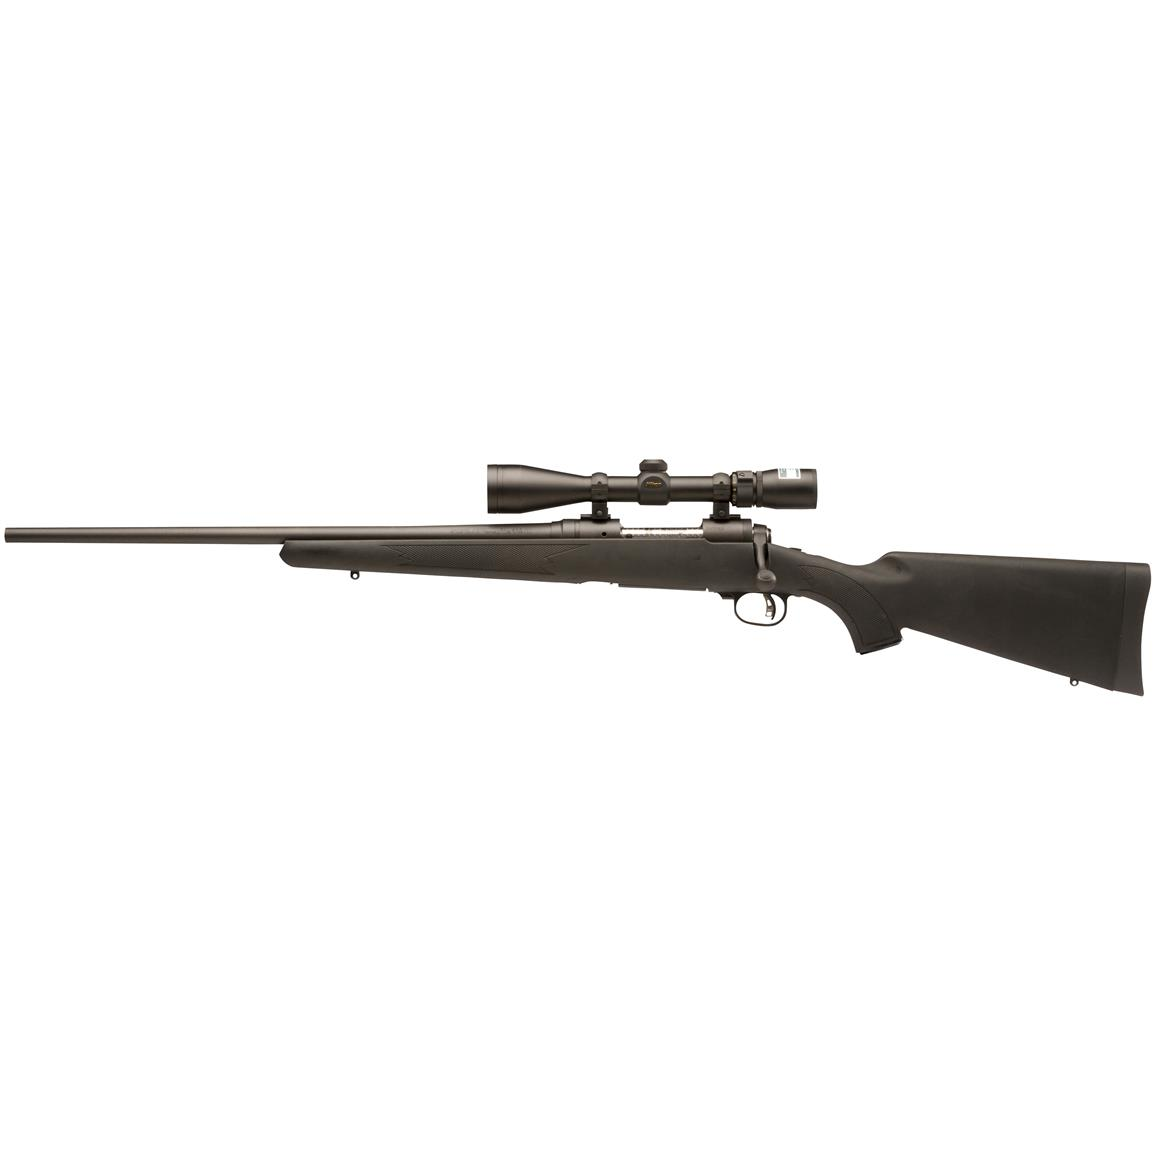 Left Handed, Savage 11 Trophy Hunter XP Package, Bolt Action, .204 Ruger, Centerfire, 19694, 011356196941, with Nikon BDC Scope